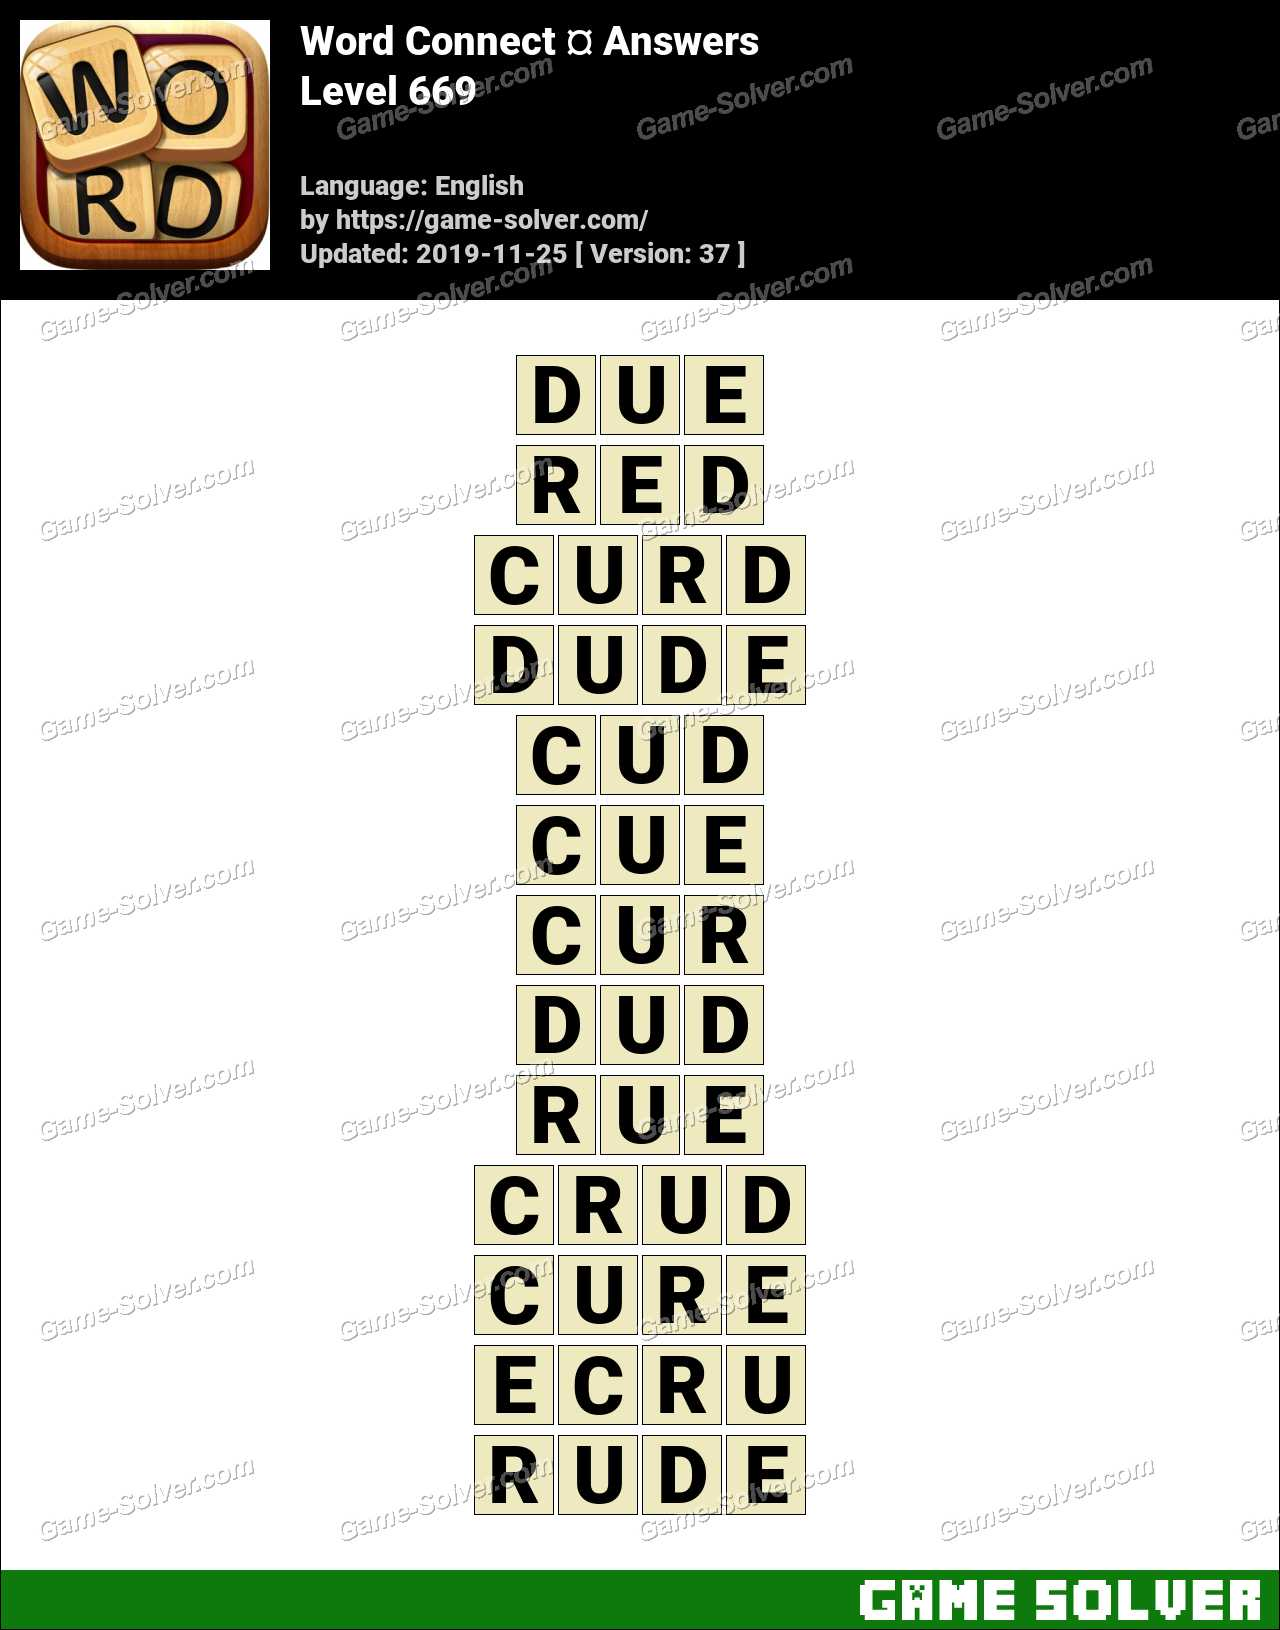 Word Connect Level 669 Answers